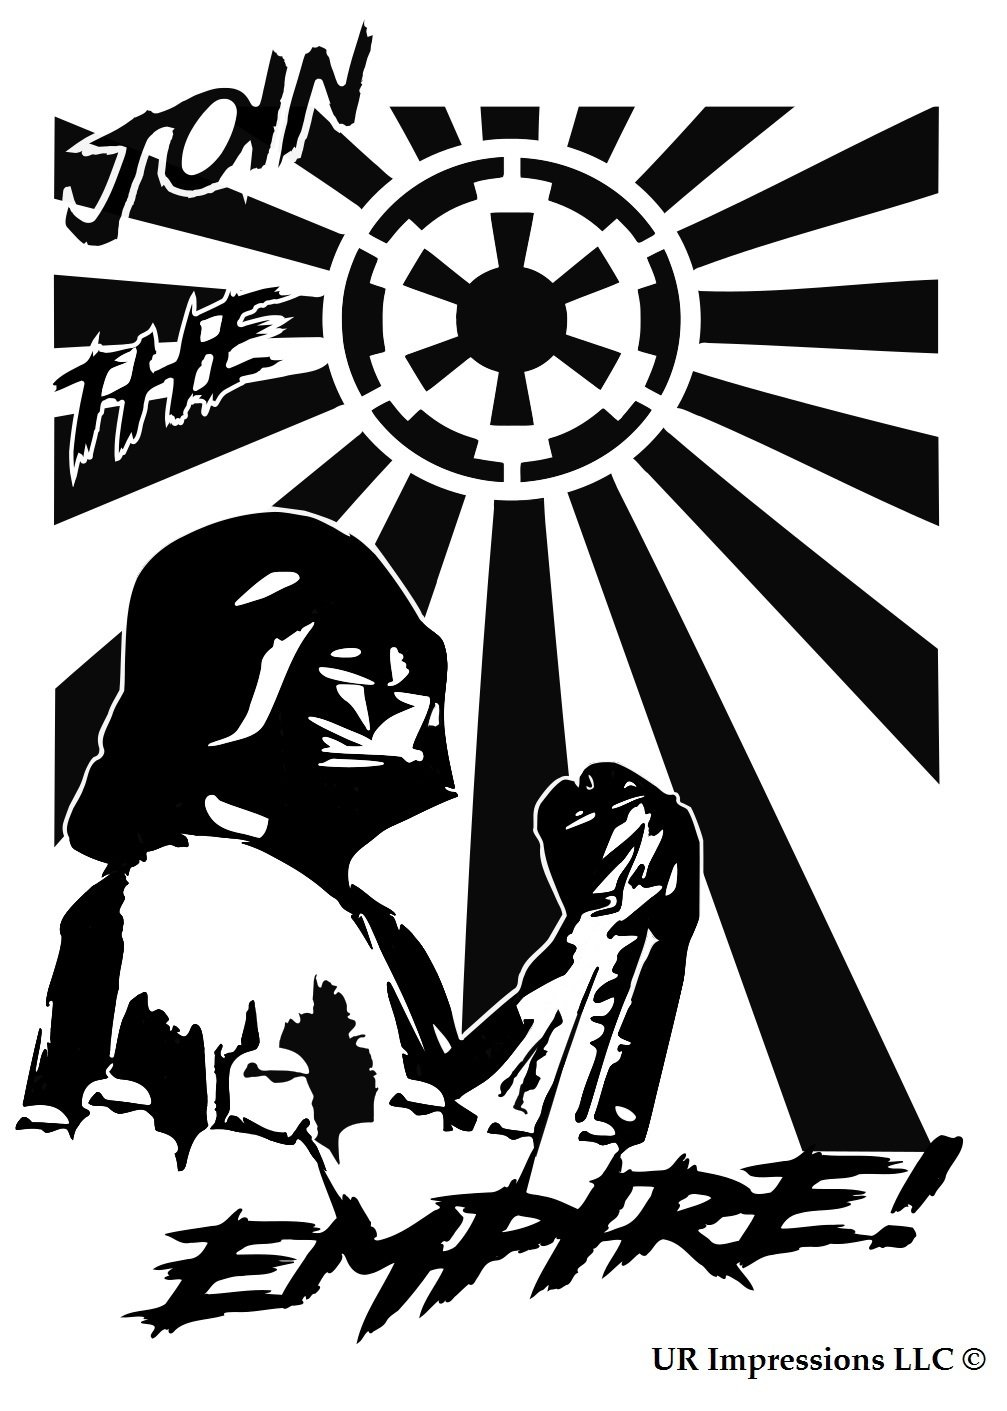 BLK Darth Vader Storm Troopers Join The Empire – Galactic Empire Rising Sun Flag Star Wars Inspiredデカールビニールsticker|cars Trucks壁laptop|black|7.5 X 5.5 in|uri464   B076HSL7XP